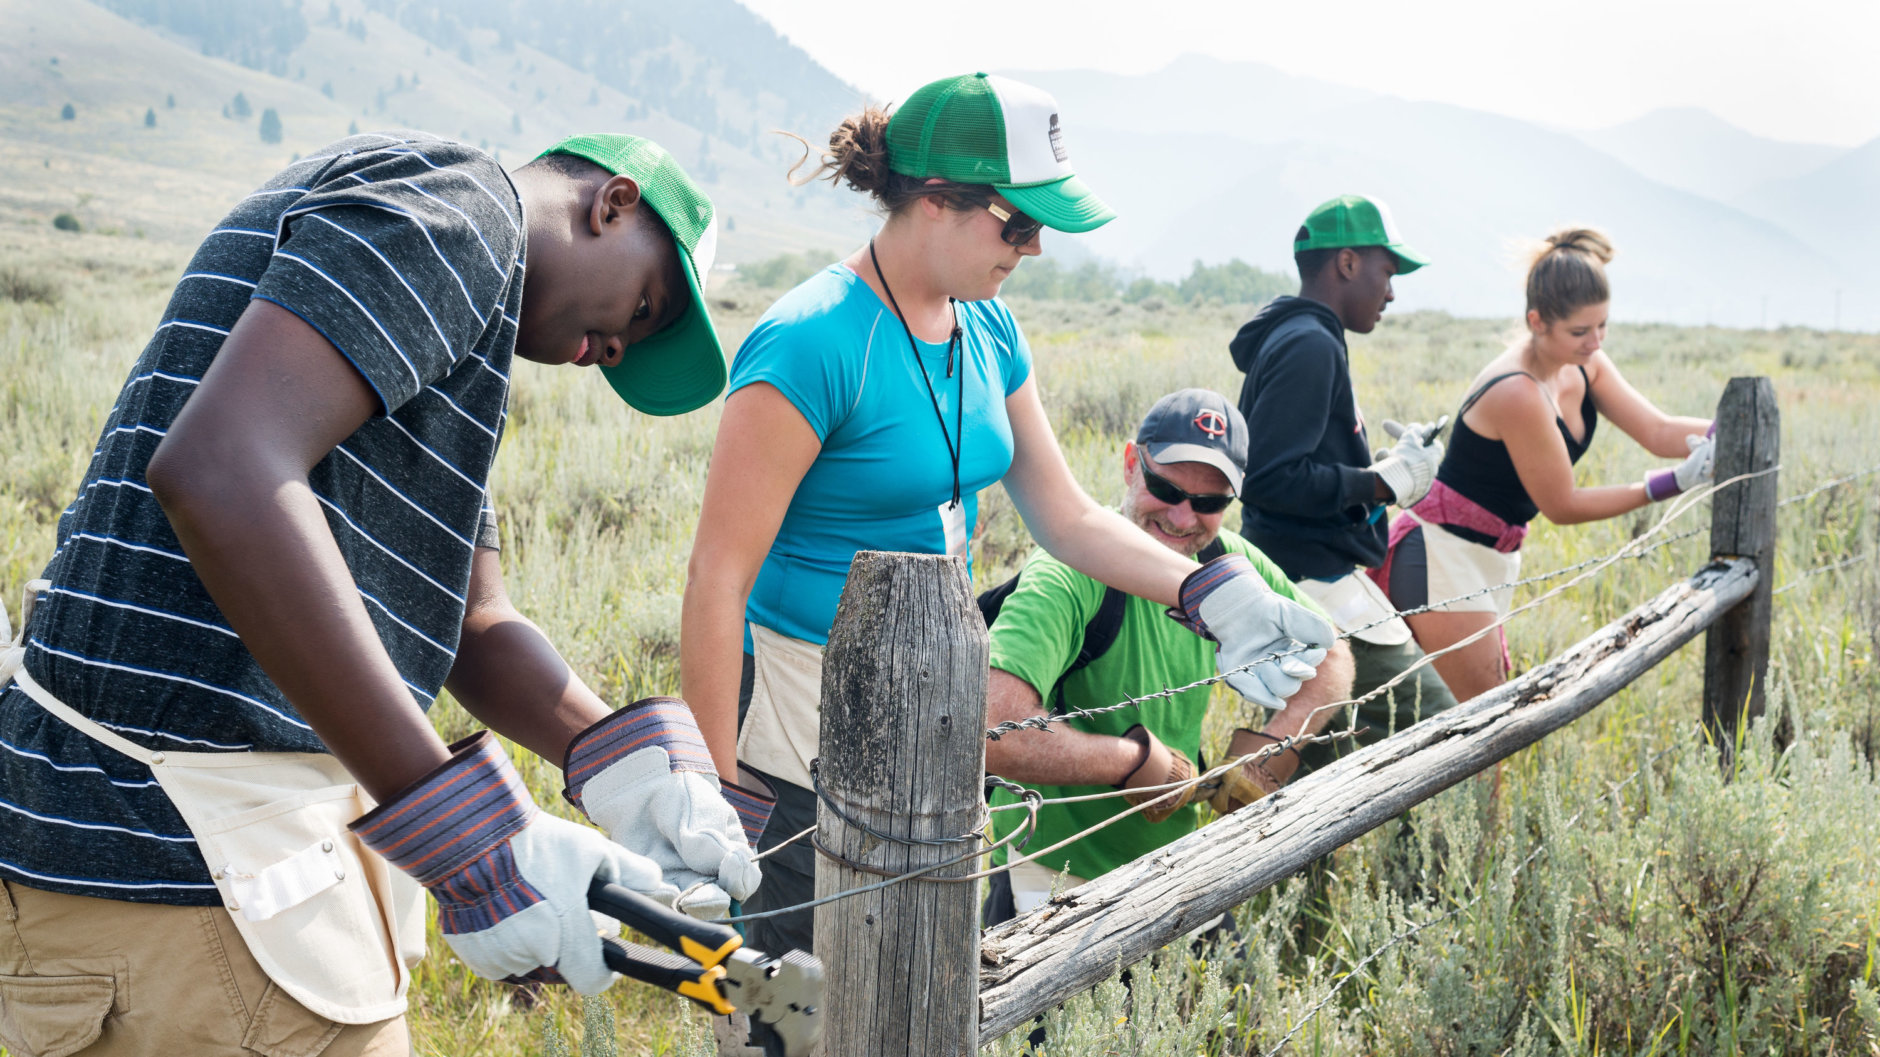 Volunteers Take Down the Fence to Allow for Antelopes to Roam.  Volunteers Take Down the Fence to Allow for Antelopes to Roam.